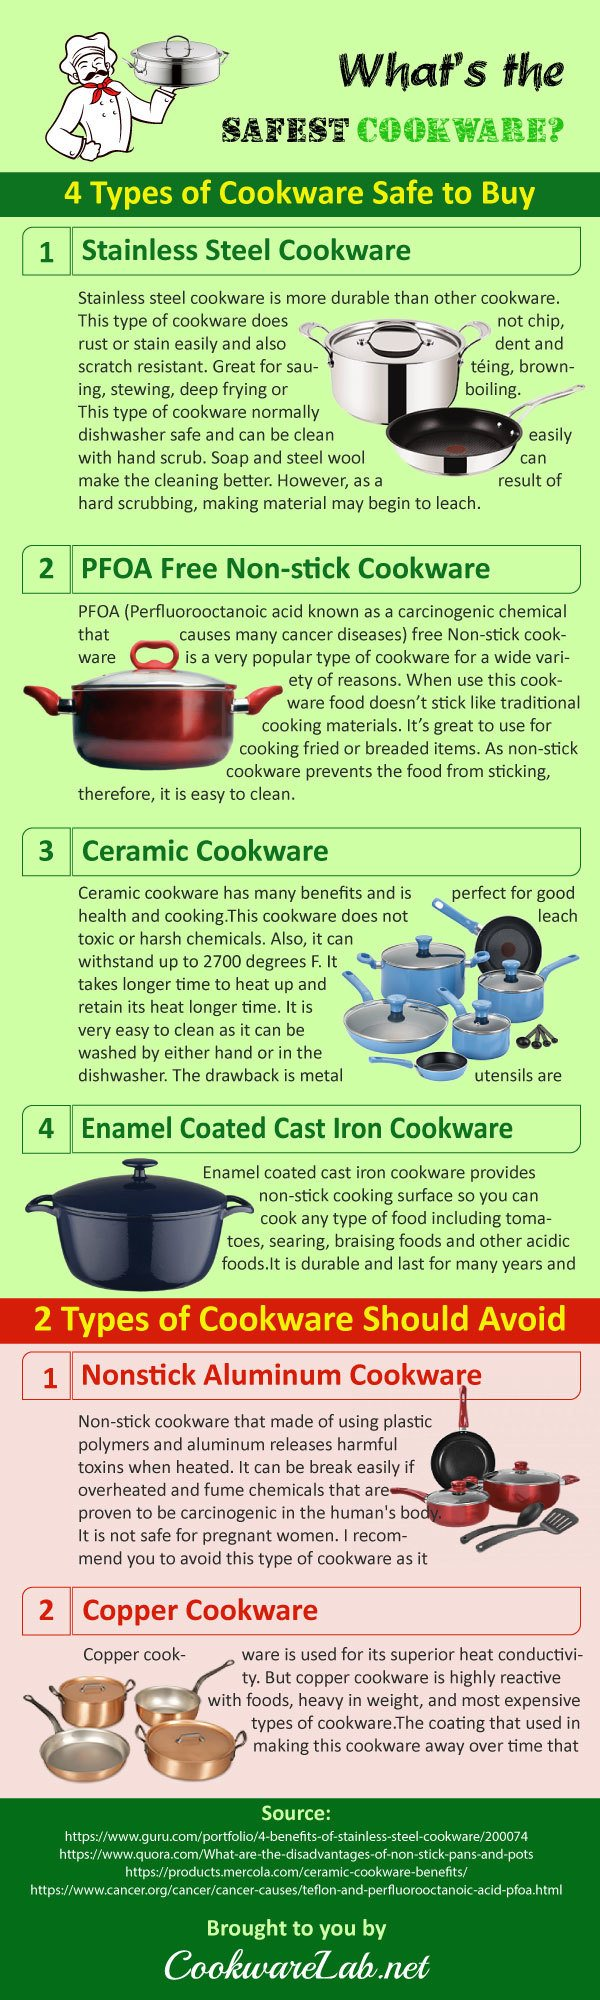 What's-the-best-safest-cookware